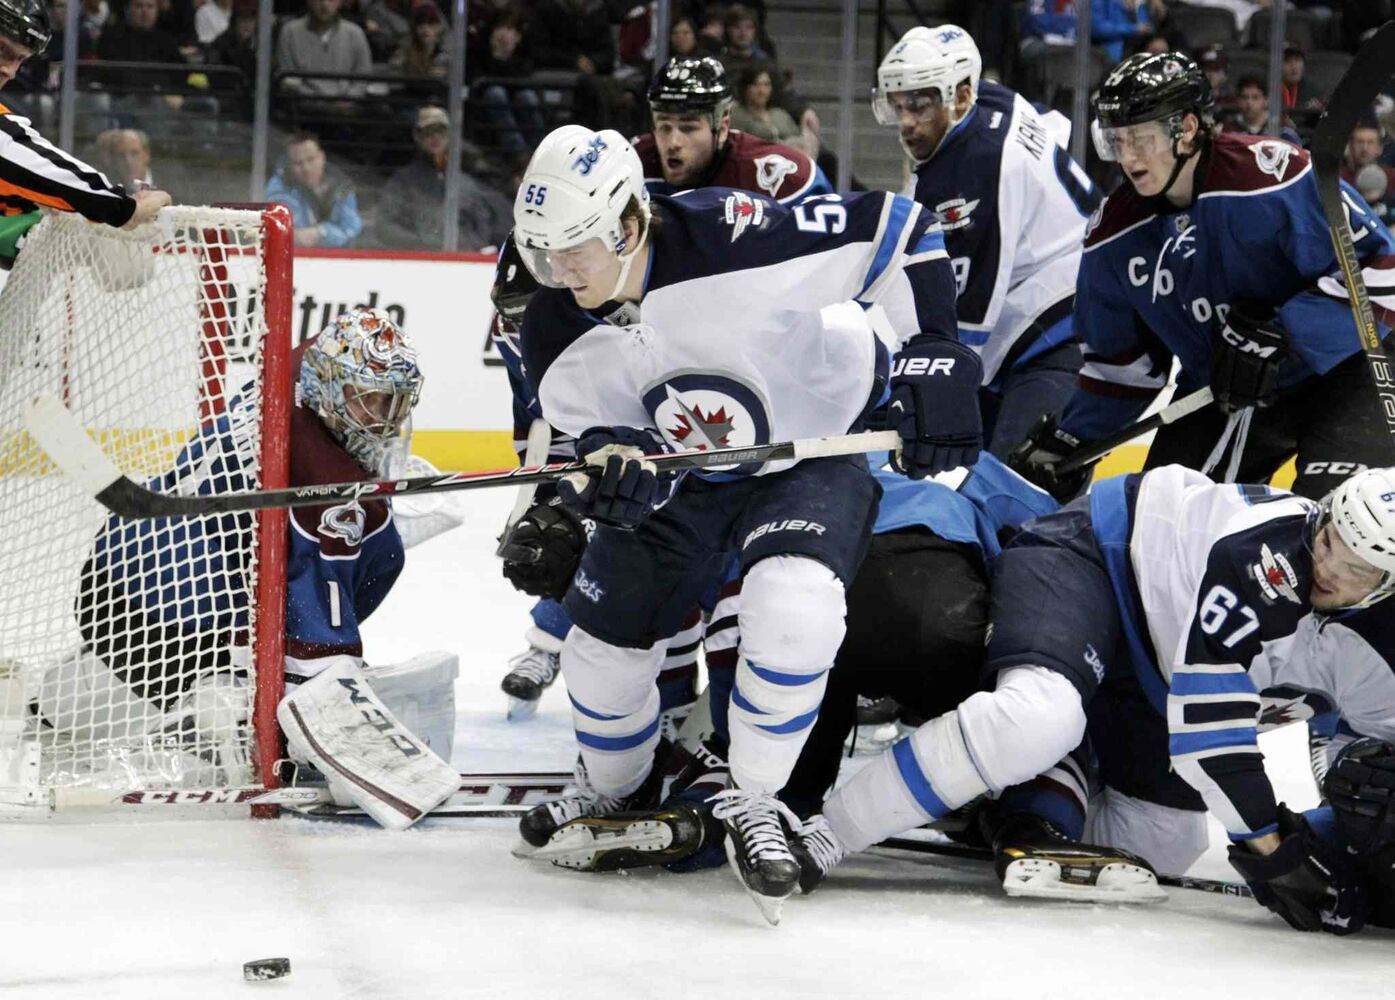 Winnipeg Jets center Mark Scheifele (front) chases the puck behind the net during the second period.